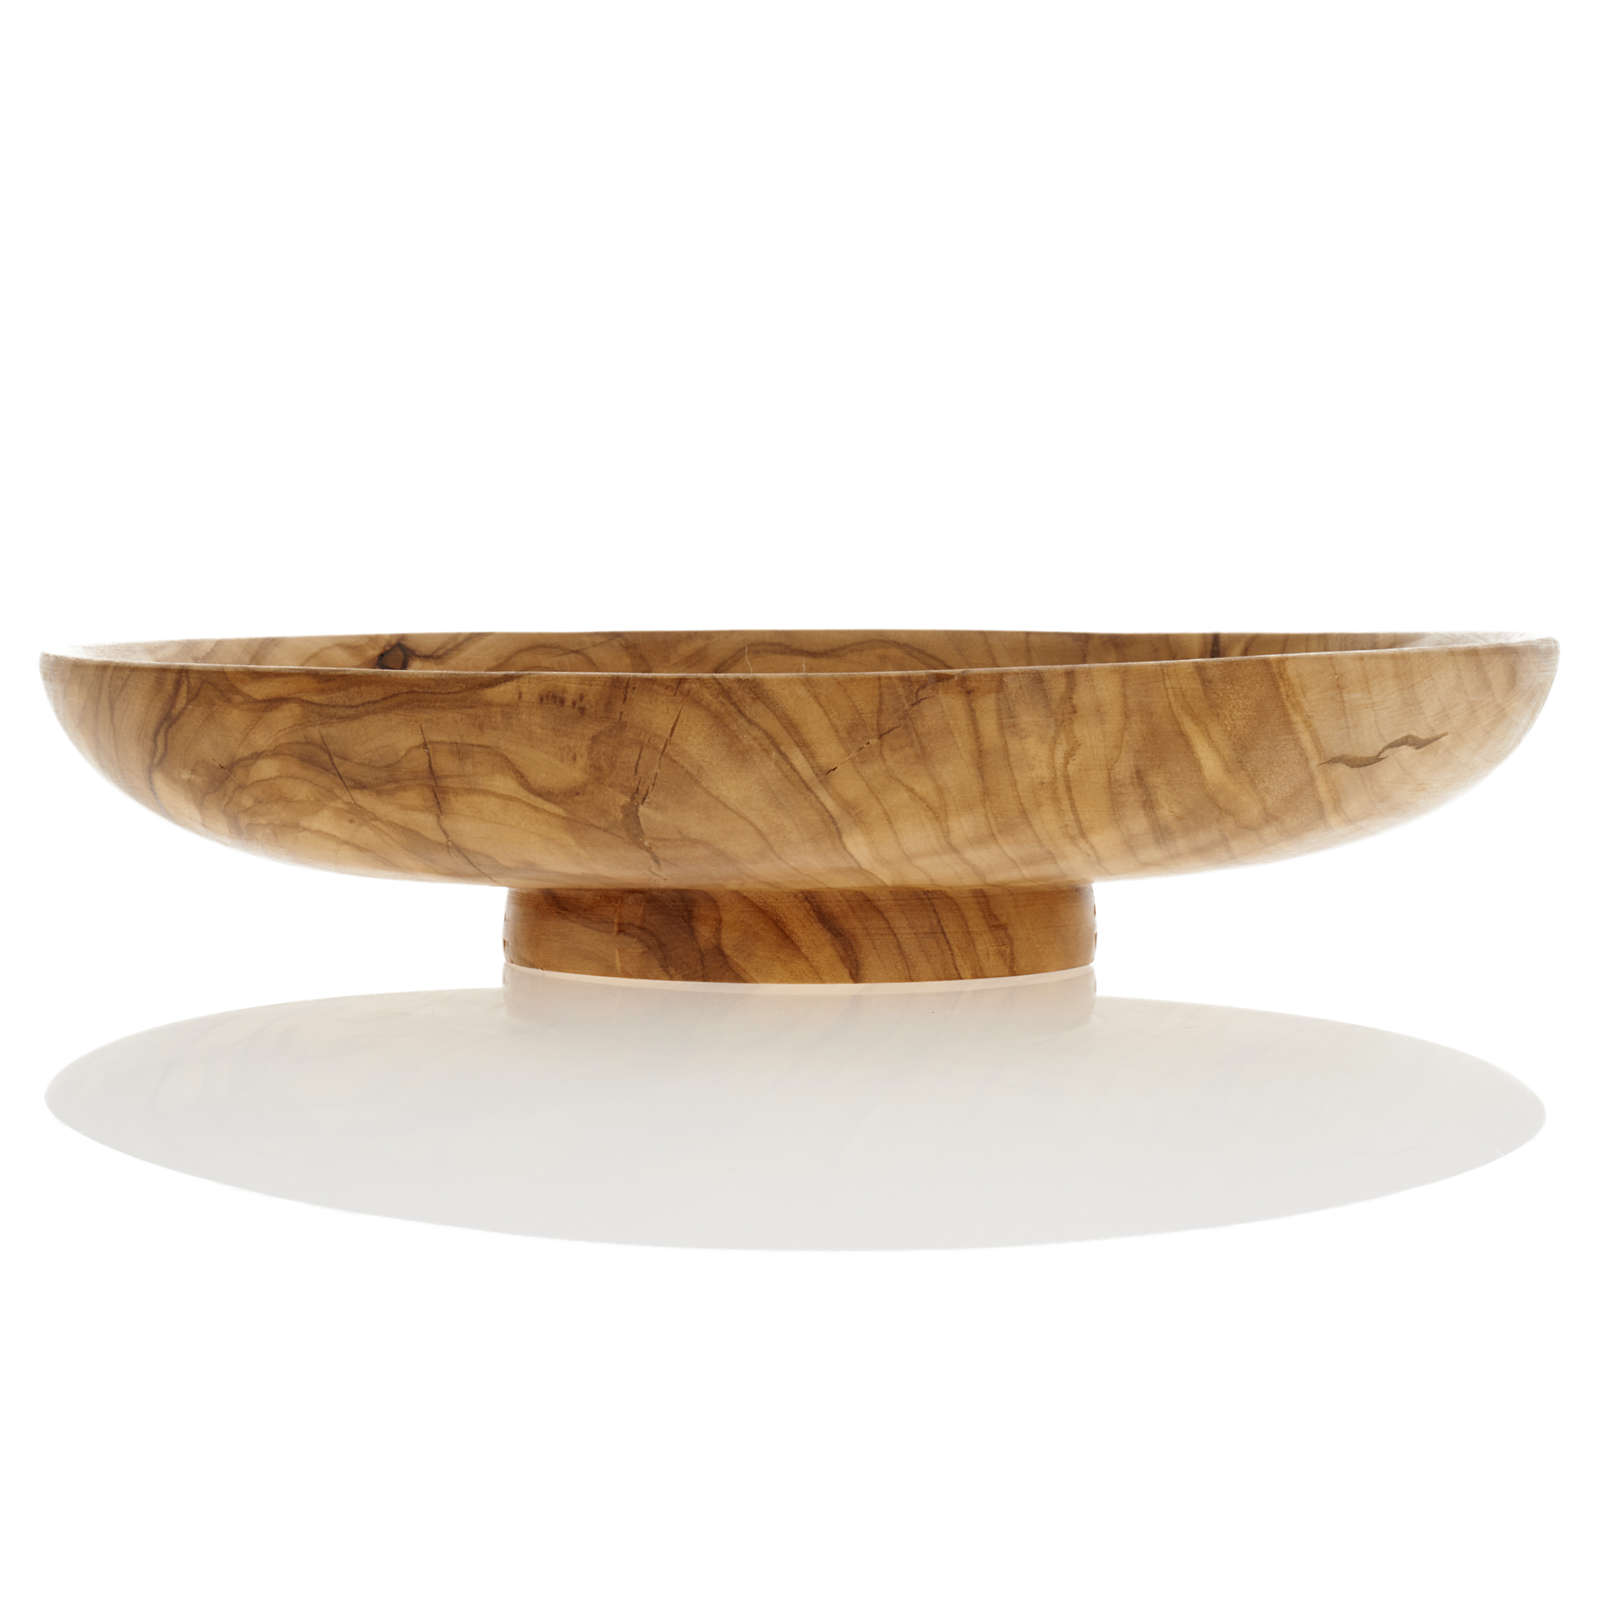 Paten in olive wood, 18cm diameter 4